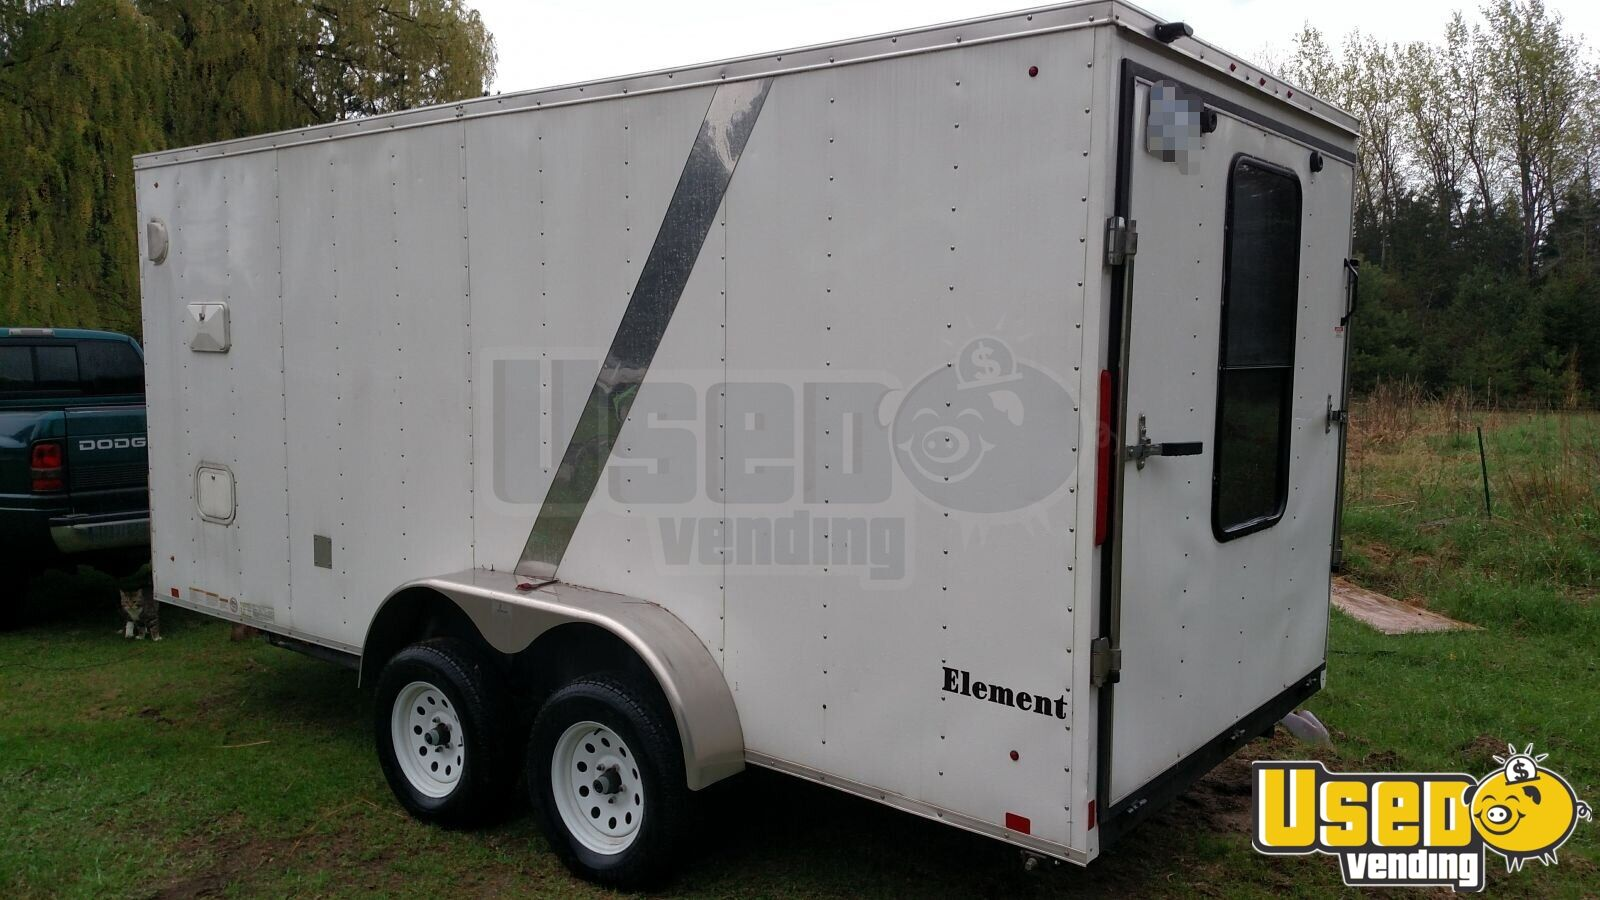 2012 Lgs Industries Concession Trailer Insulated Walls Michigan for Sale - 3